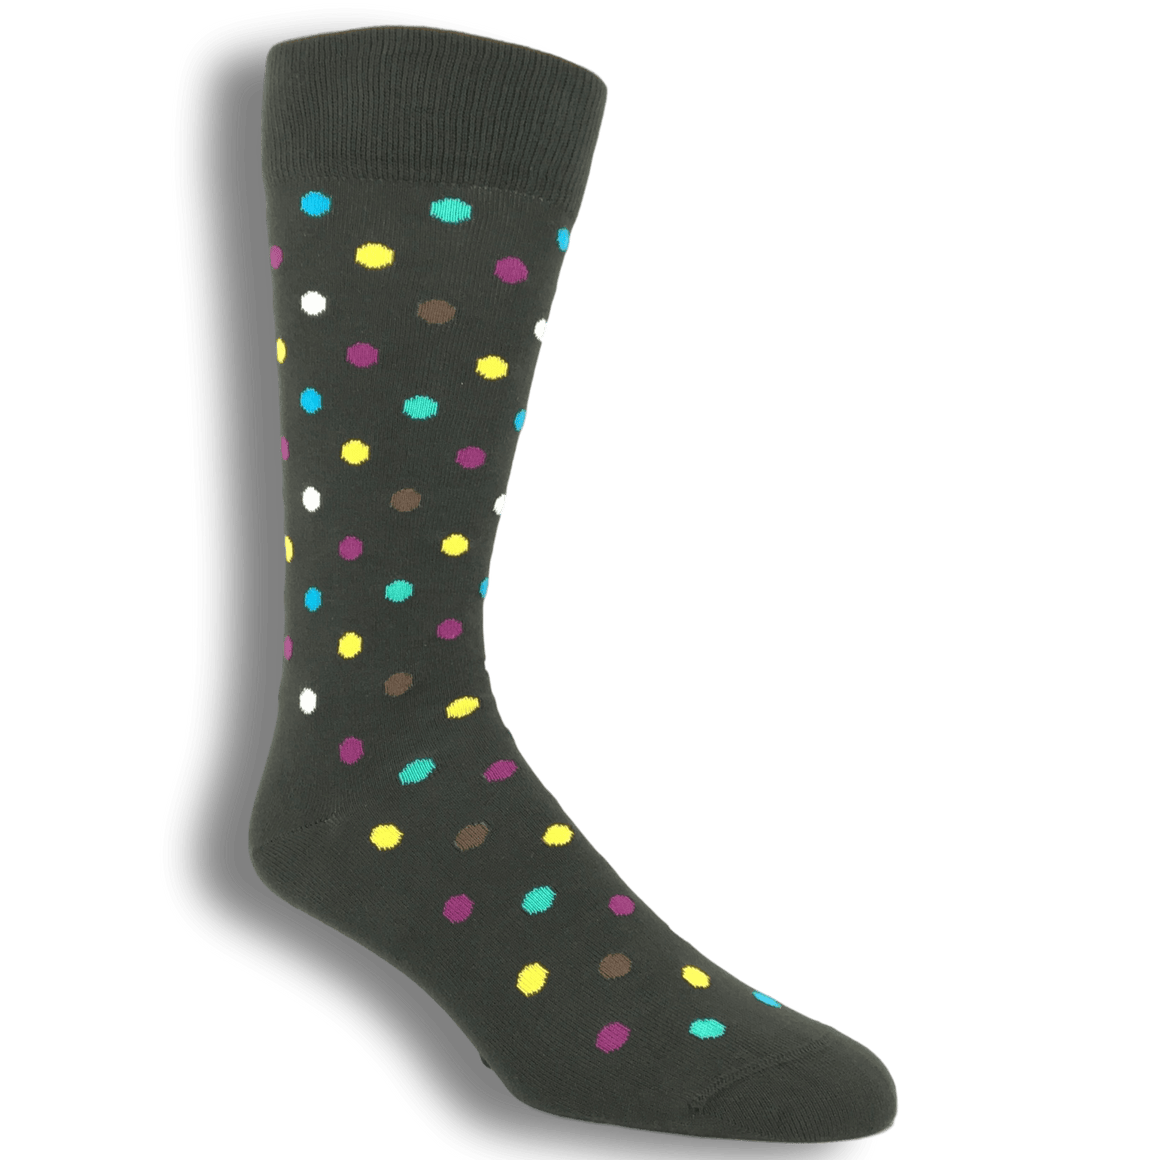 Black with Multi Colored Dots Socks by Happy Socks - The Sock Spot